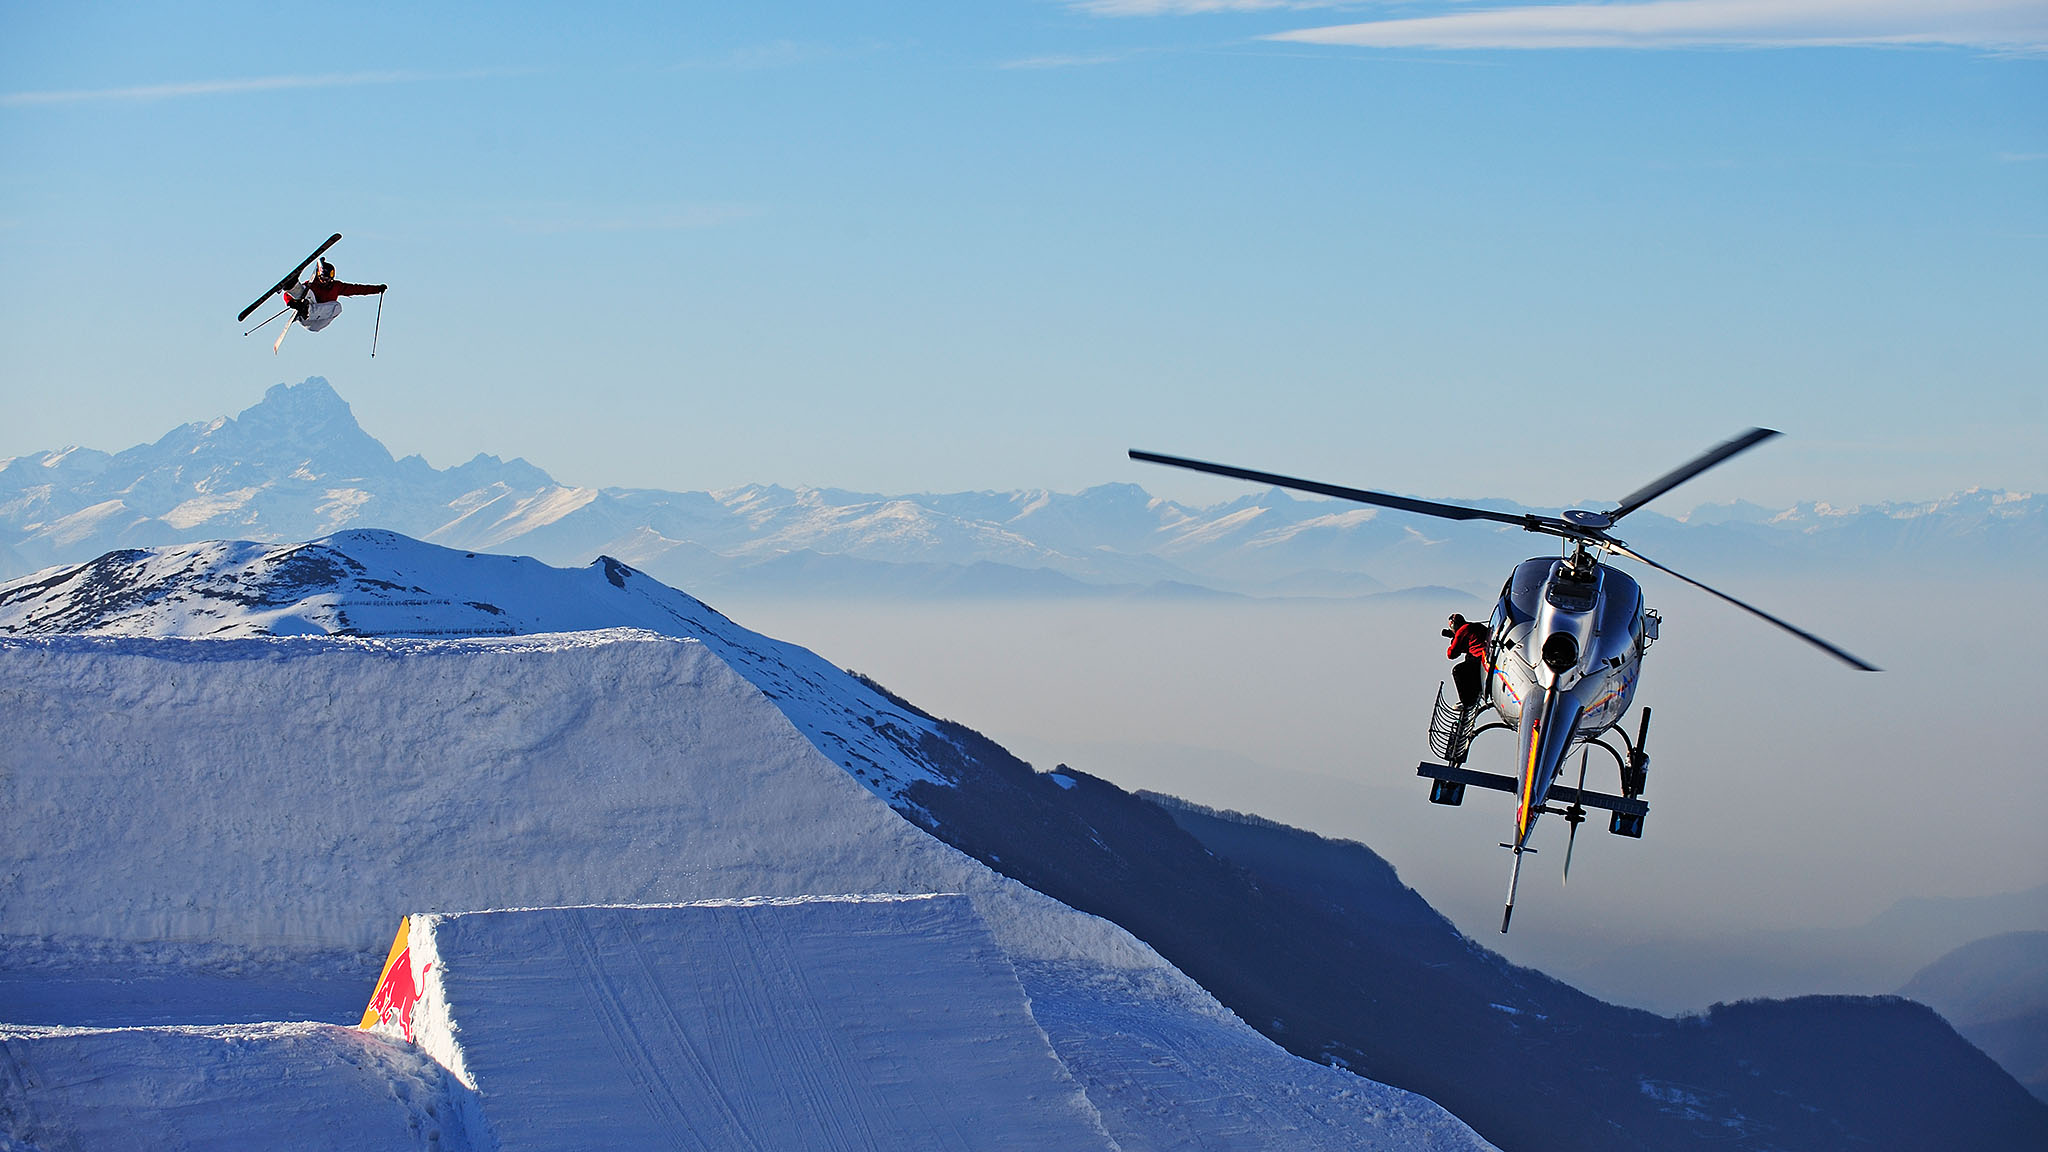 HElicopter Charter - We offer helicopter transfers to ALL SKI RESORTS